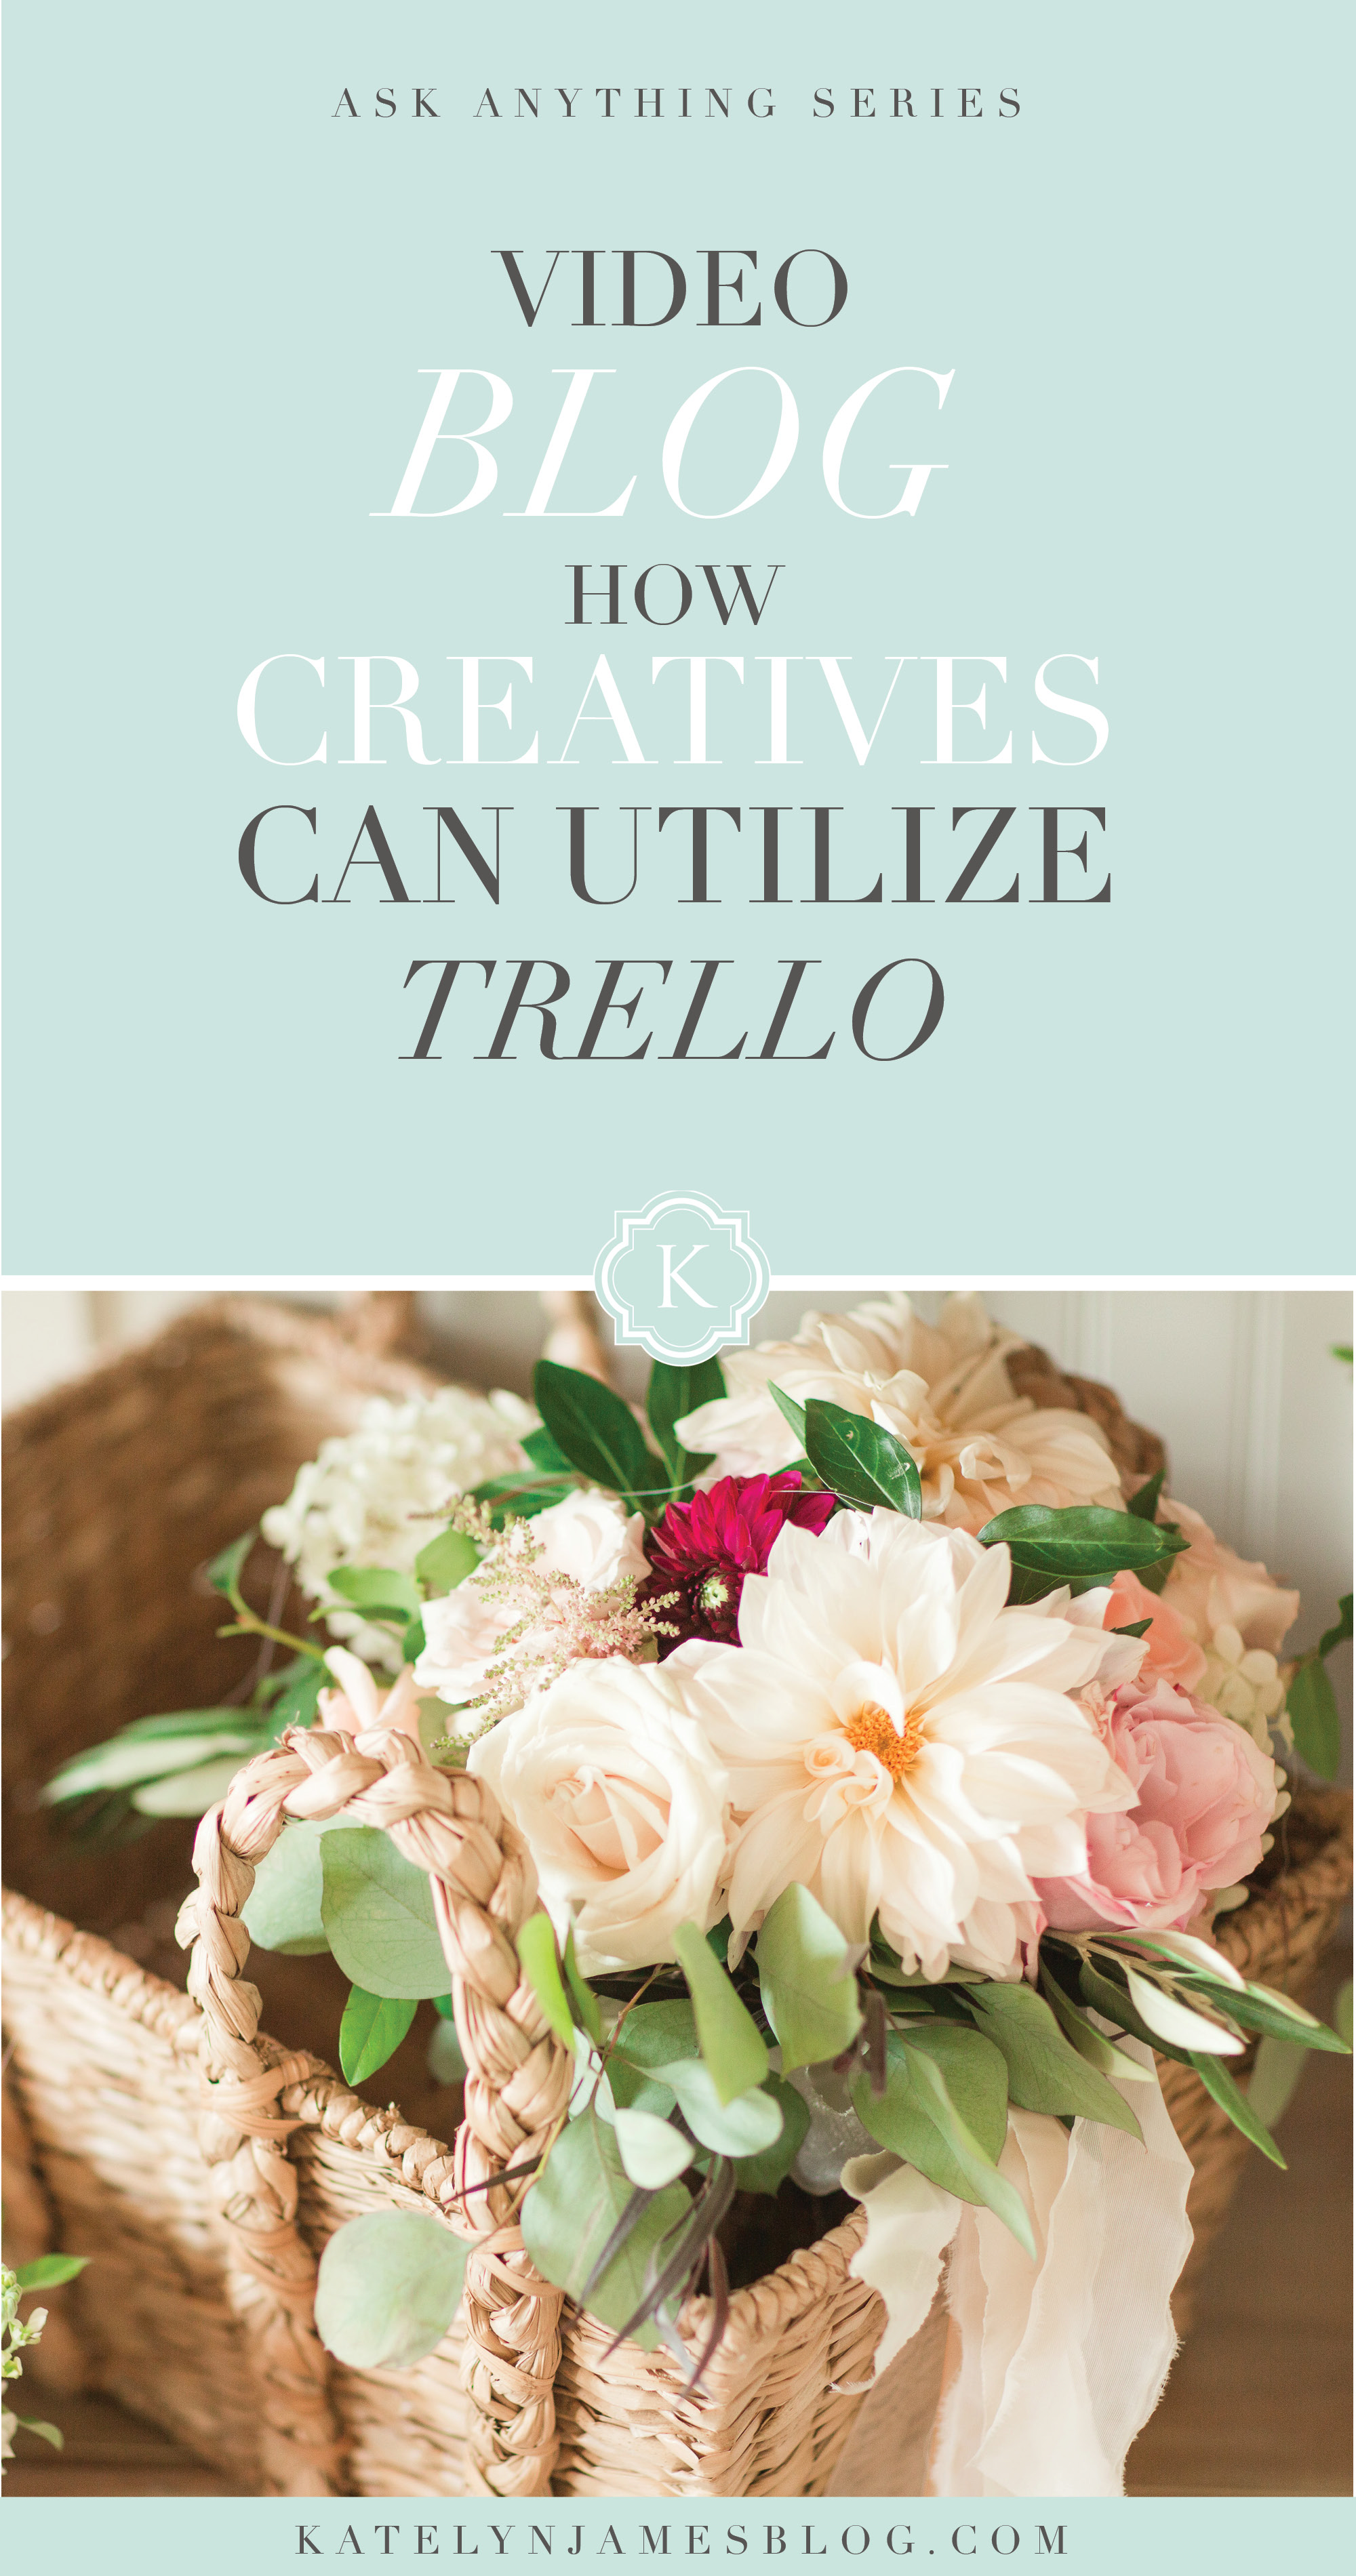 How Creatives Can Utilize Trello by Katelyn James Photography